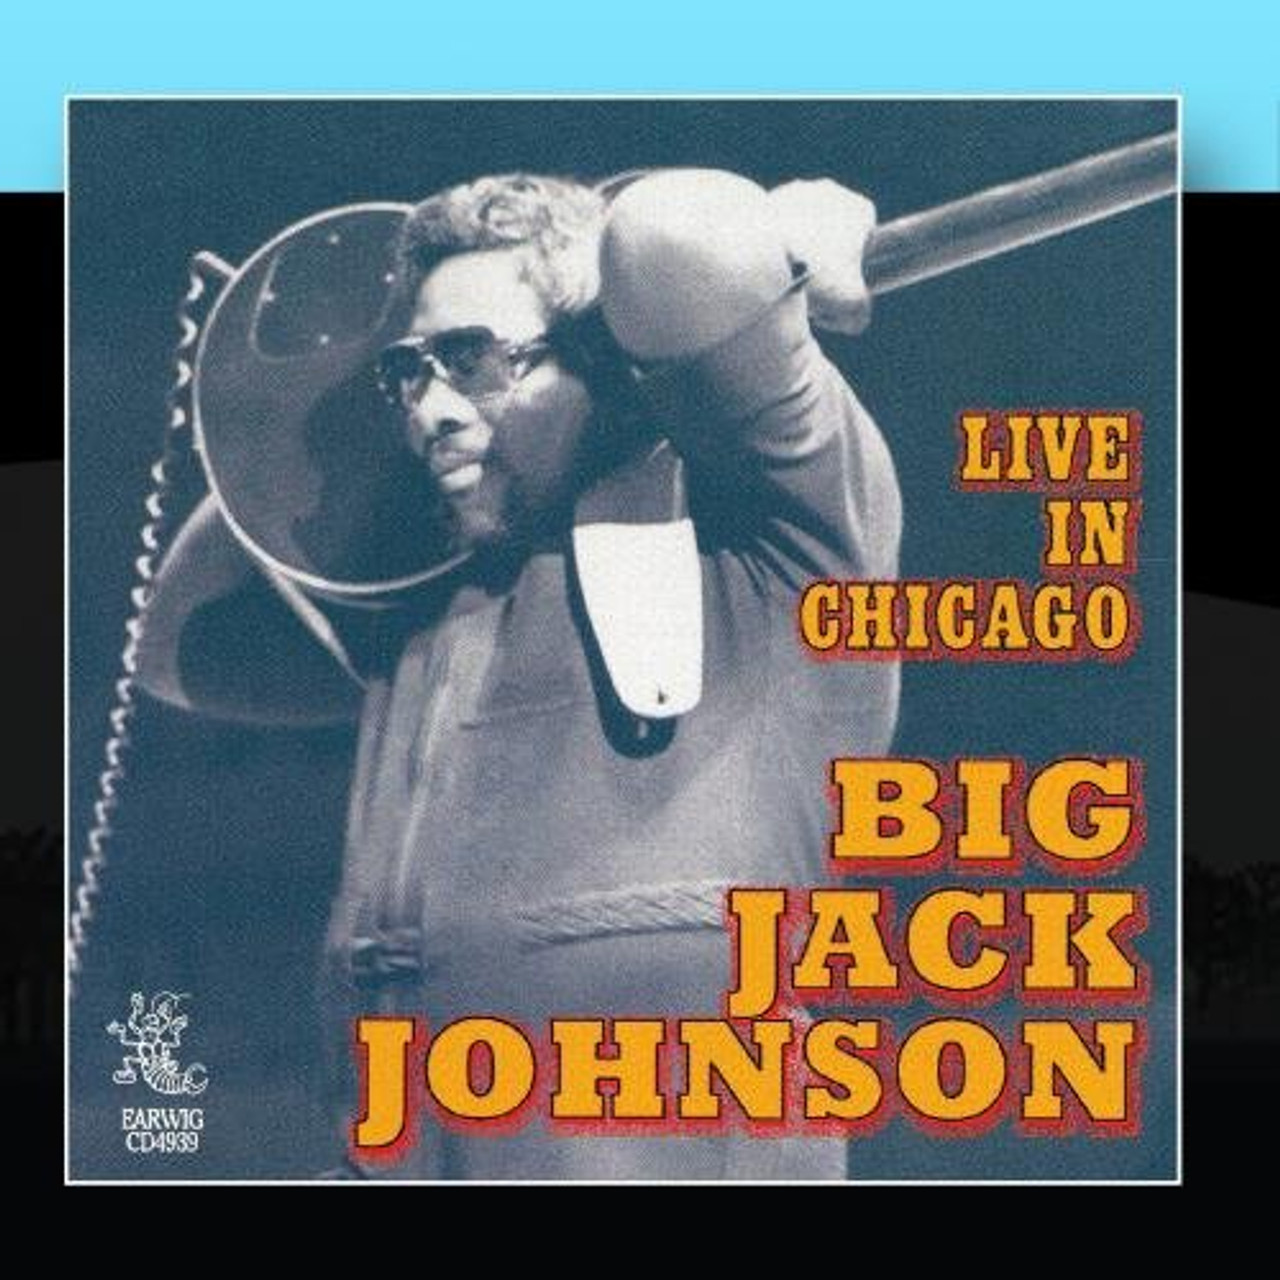 Big Jack Johnson - Live in Chicago